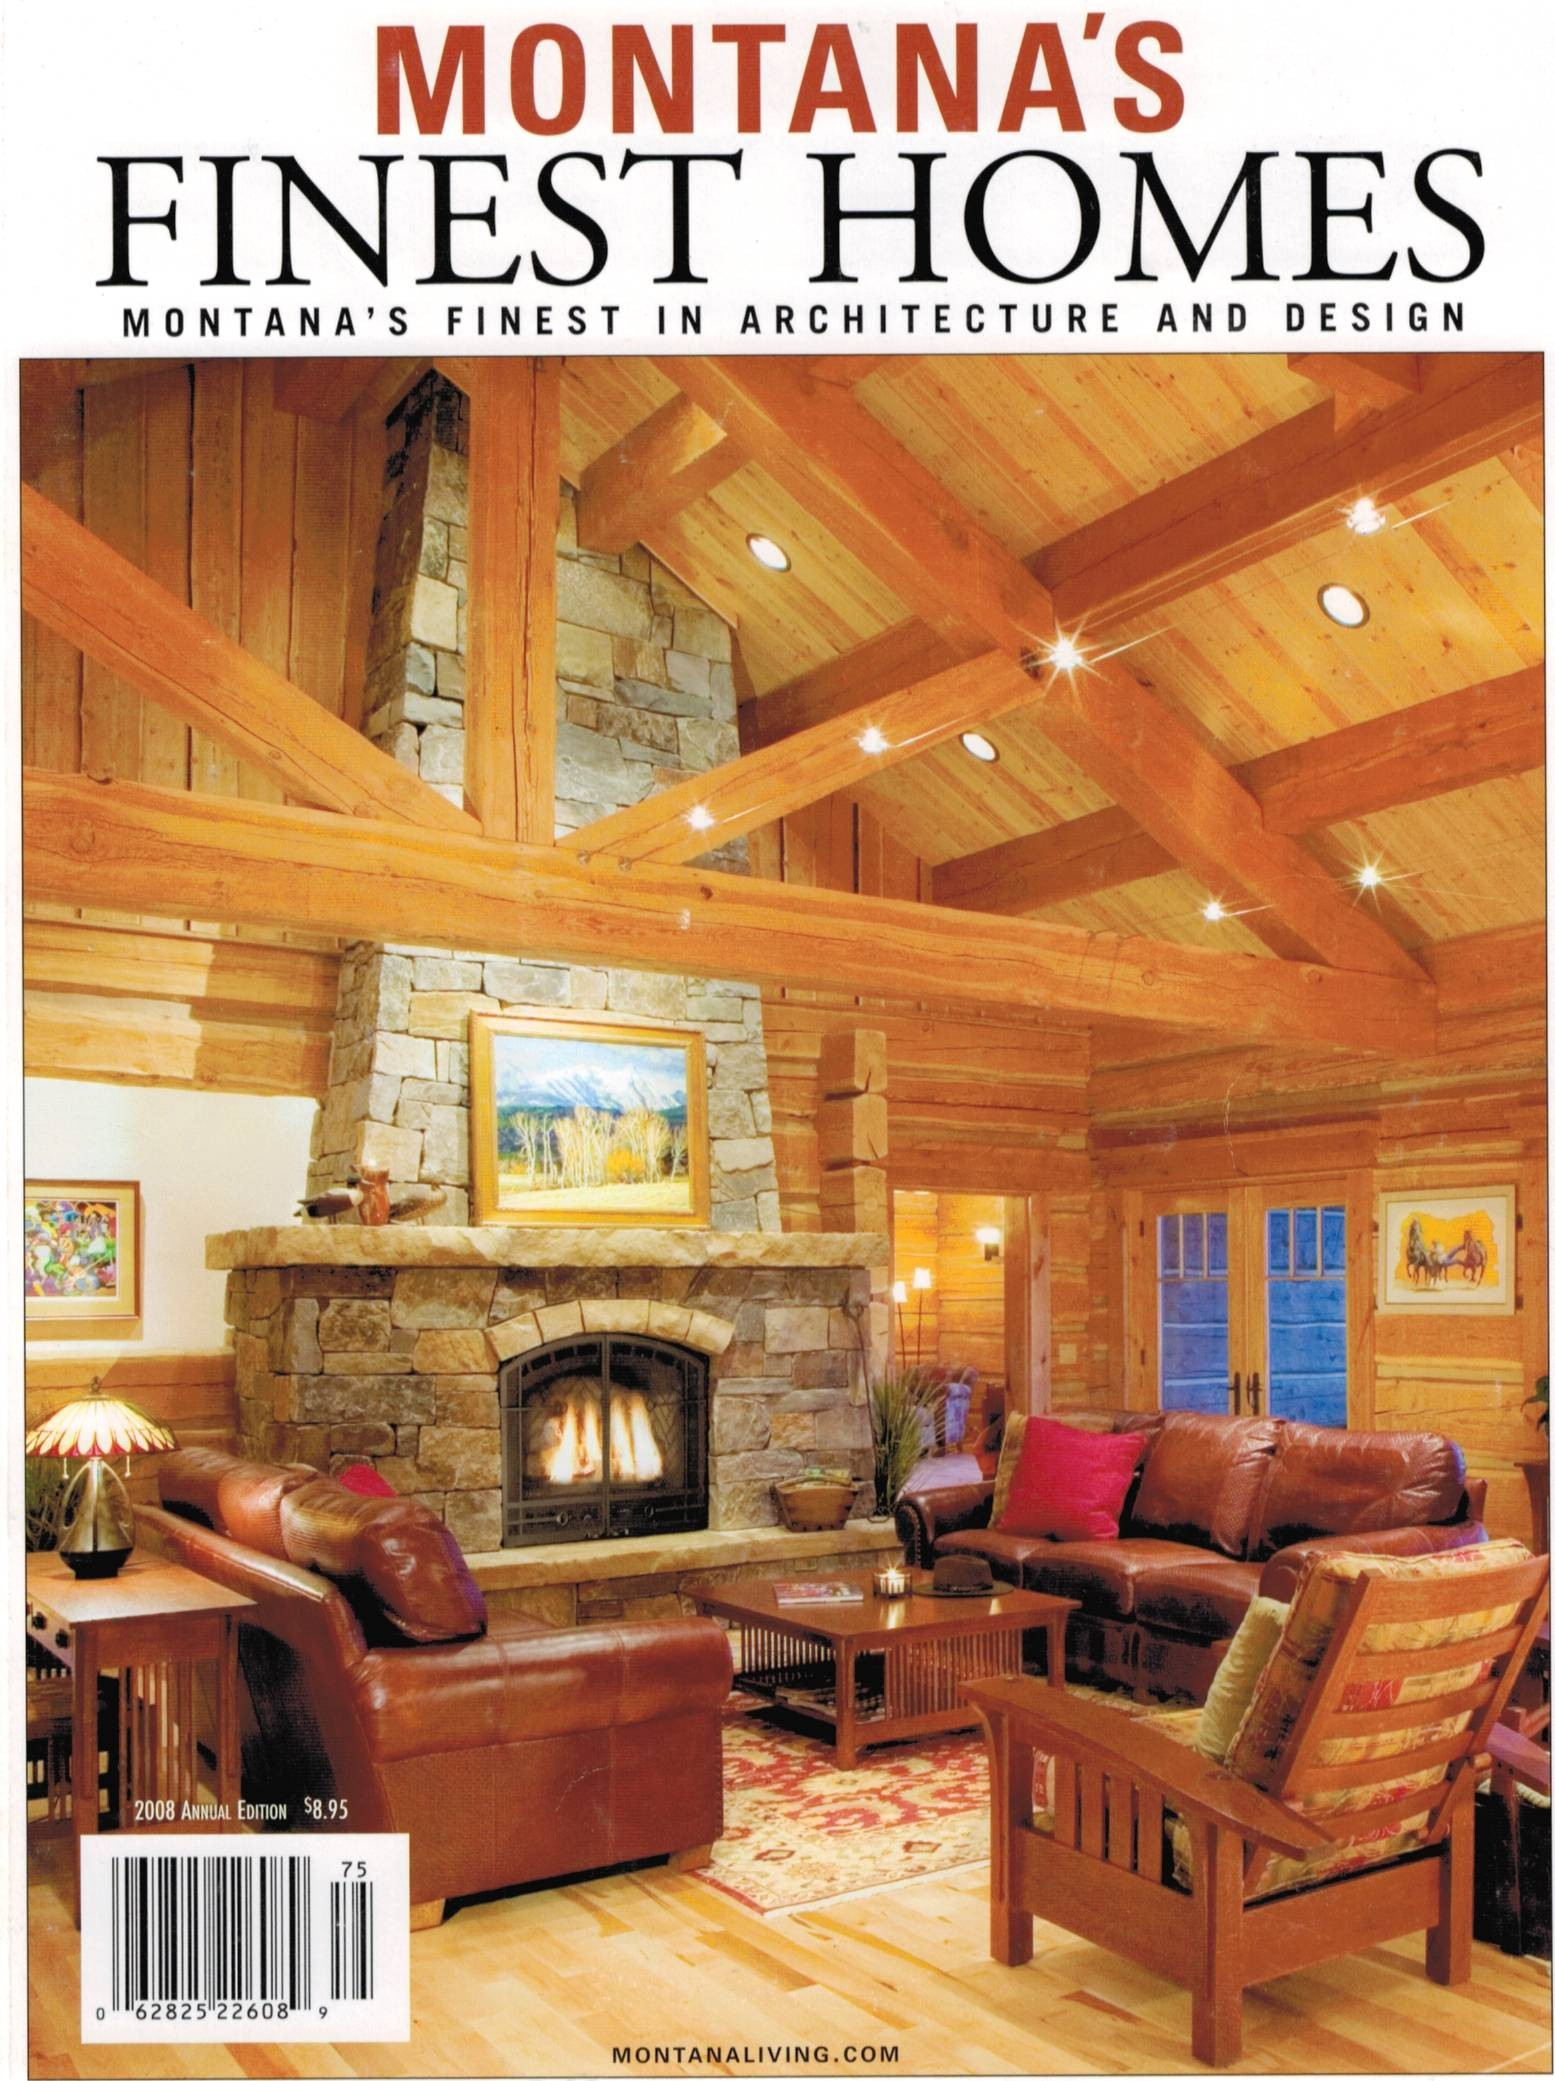 16 Montanas Finest Homes-2008 Annual.jpg